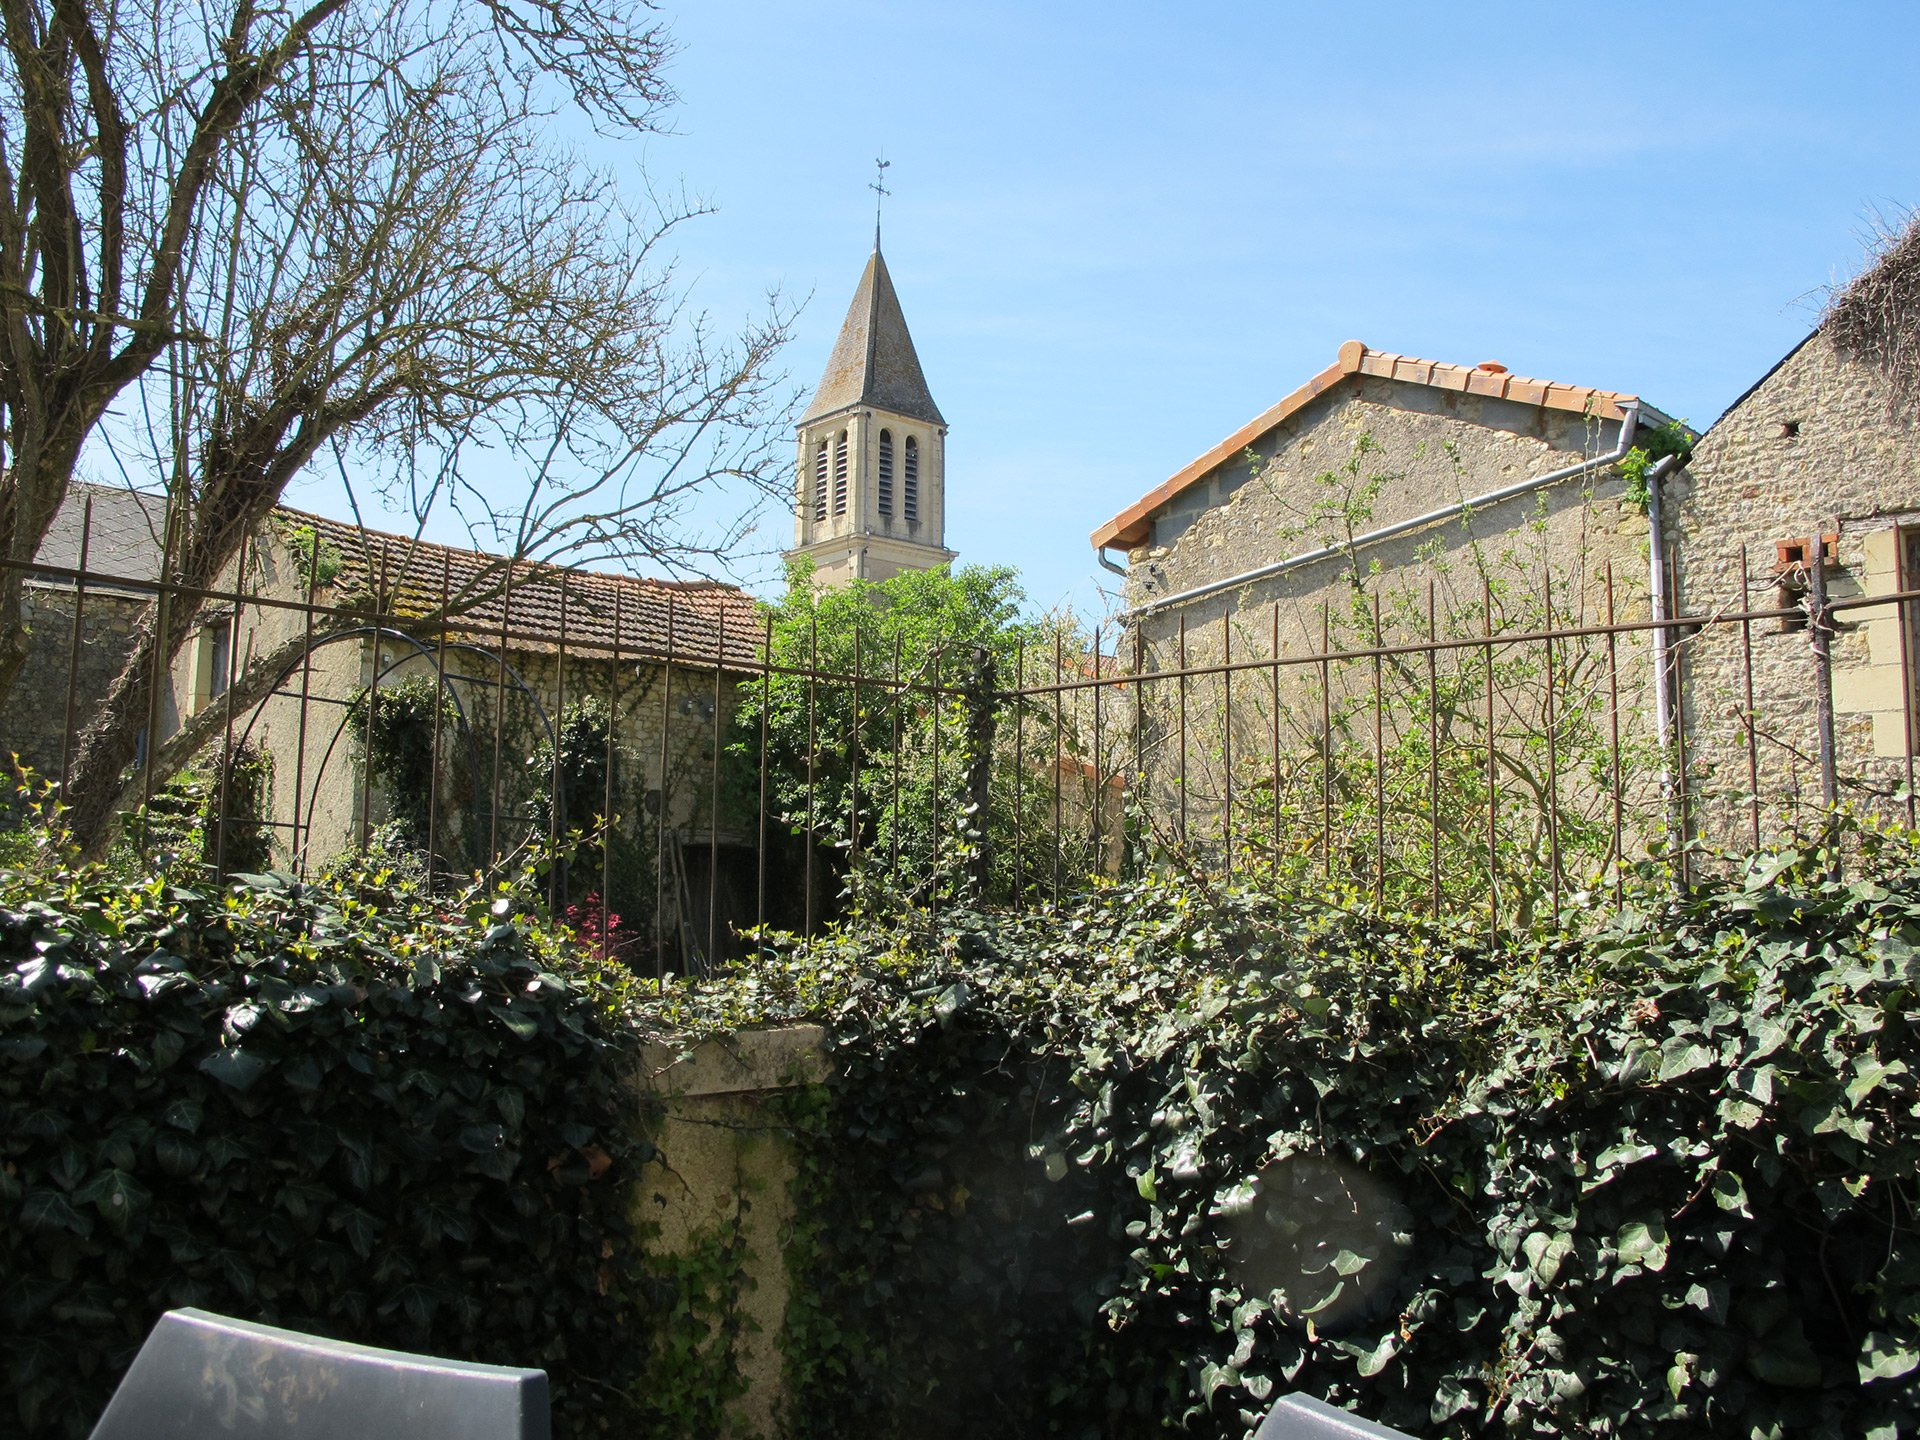 Courtyard facing the Abbey